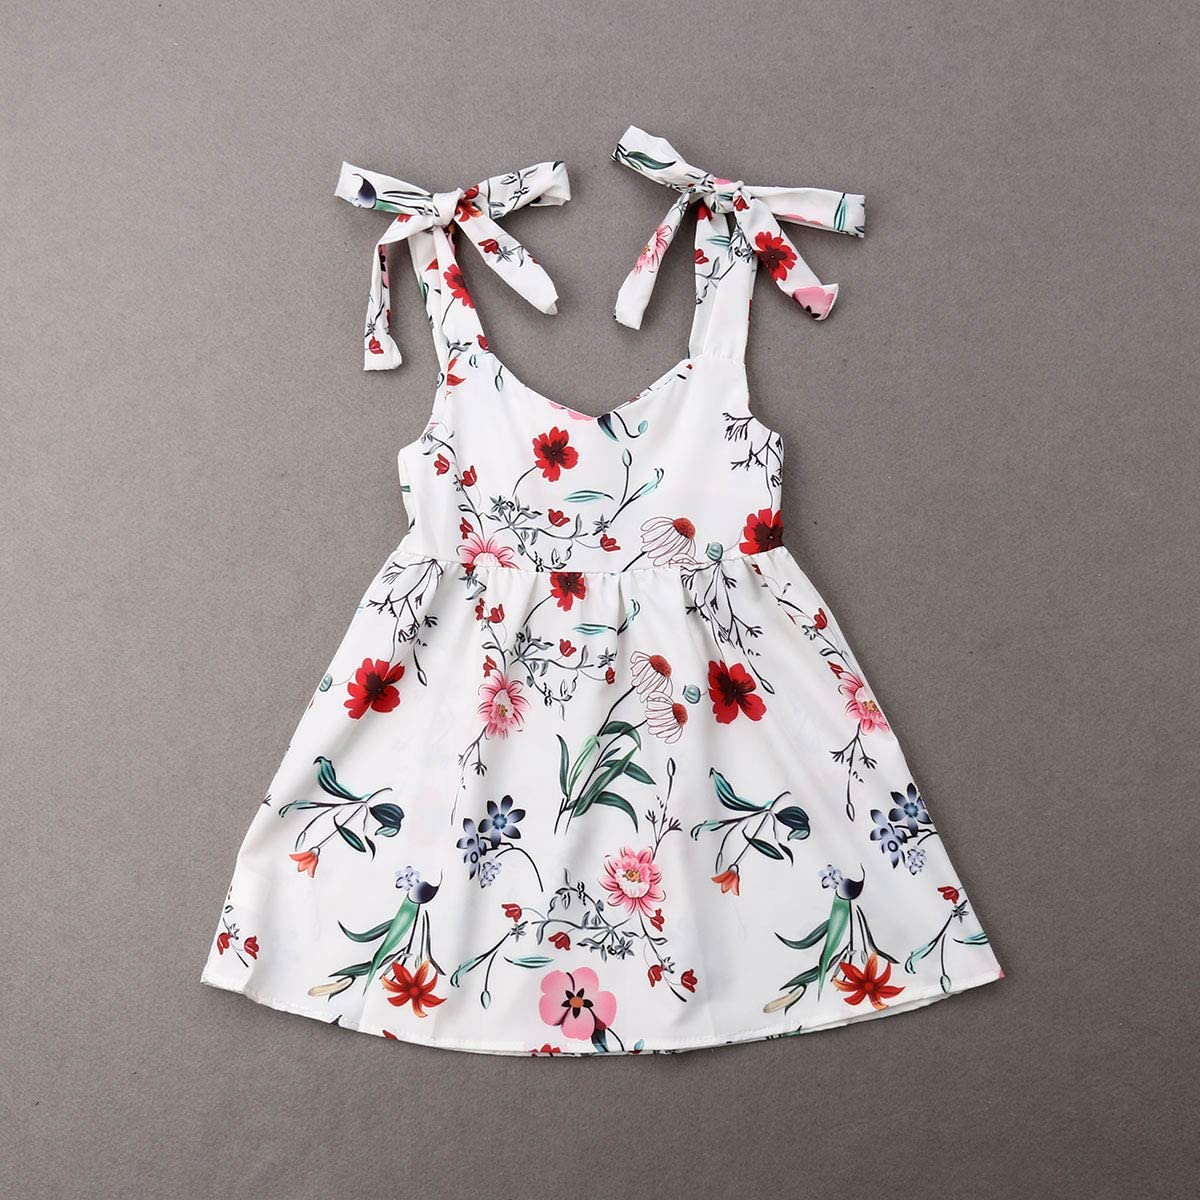 Mom and Baby Floral Dress Summer Ruffle Chiffon Sundress Mother and Daughter Matching Clothes